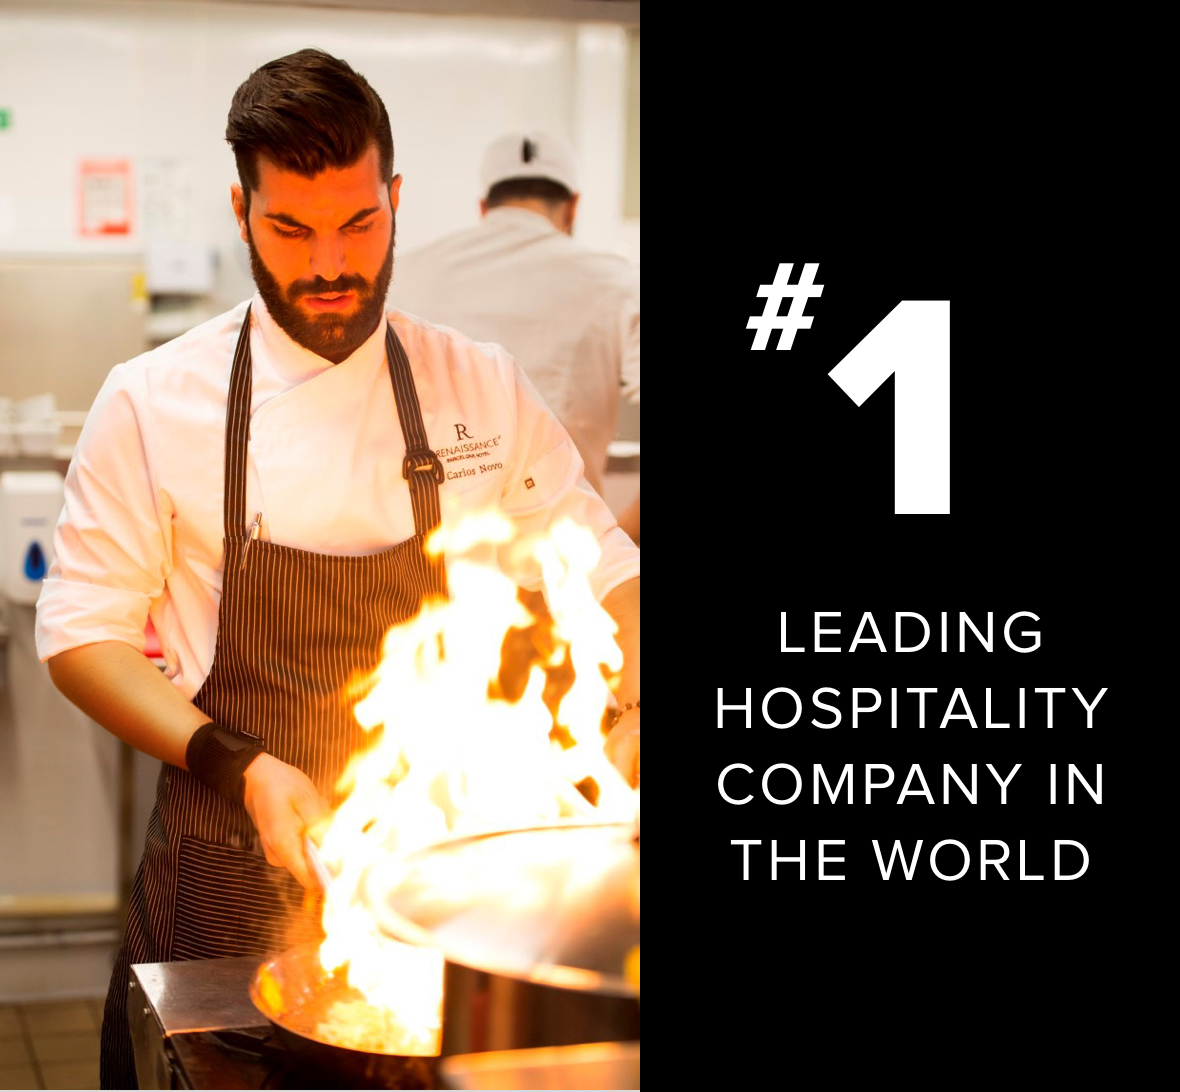 Number one leading hospitality company in the world